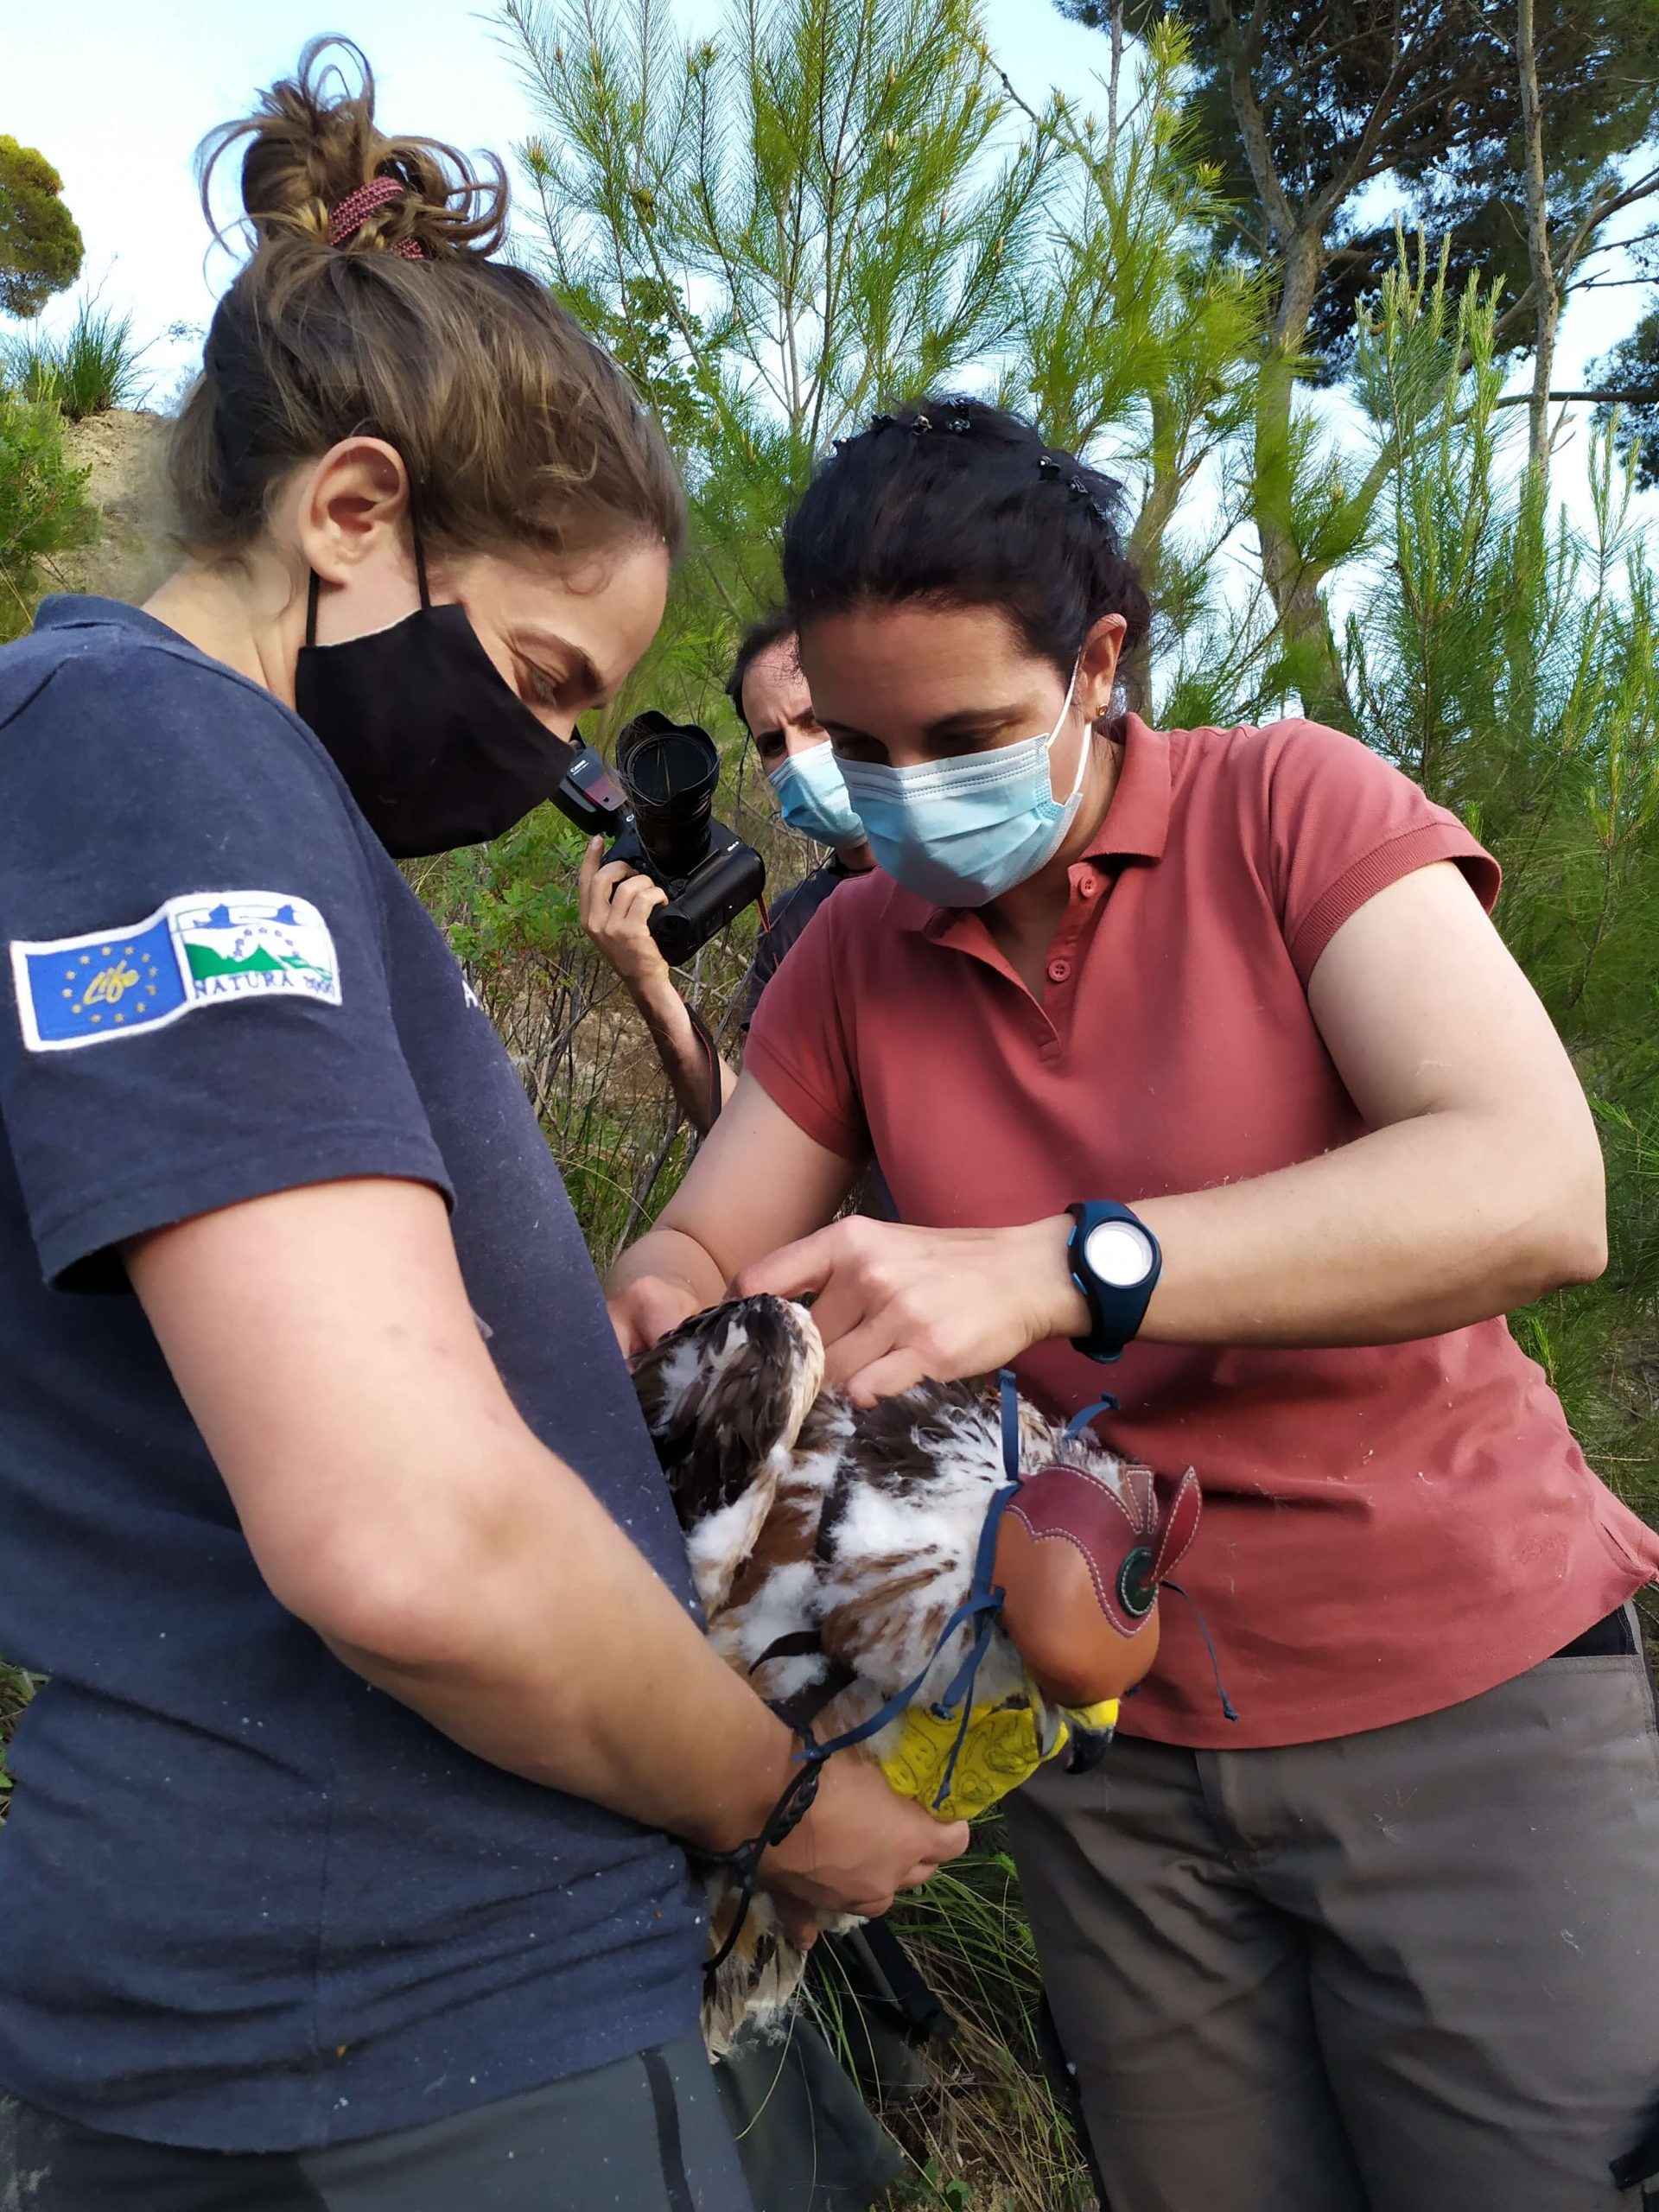 Equipping the eagle with the GPS tag - Pollutri